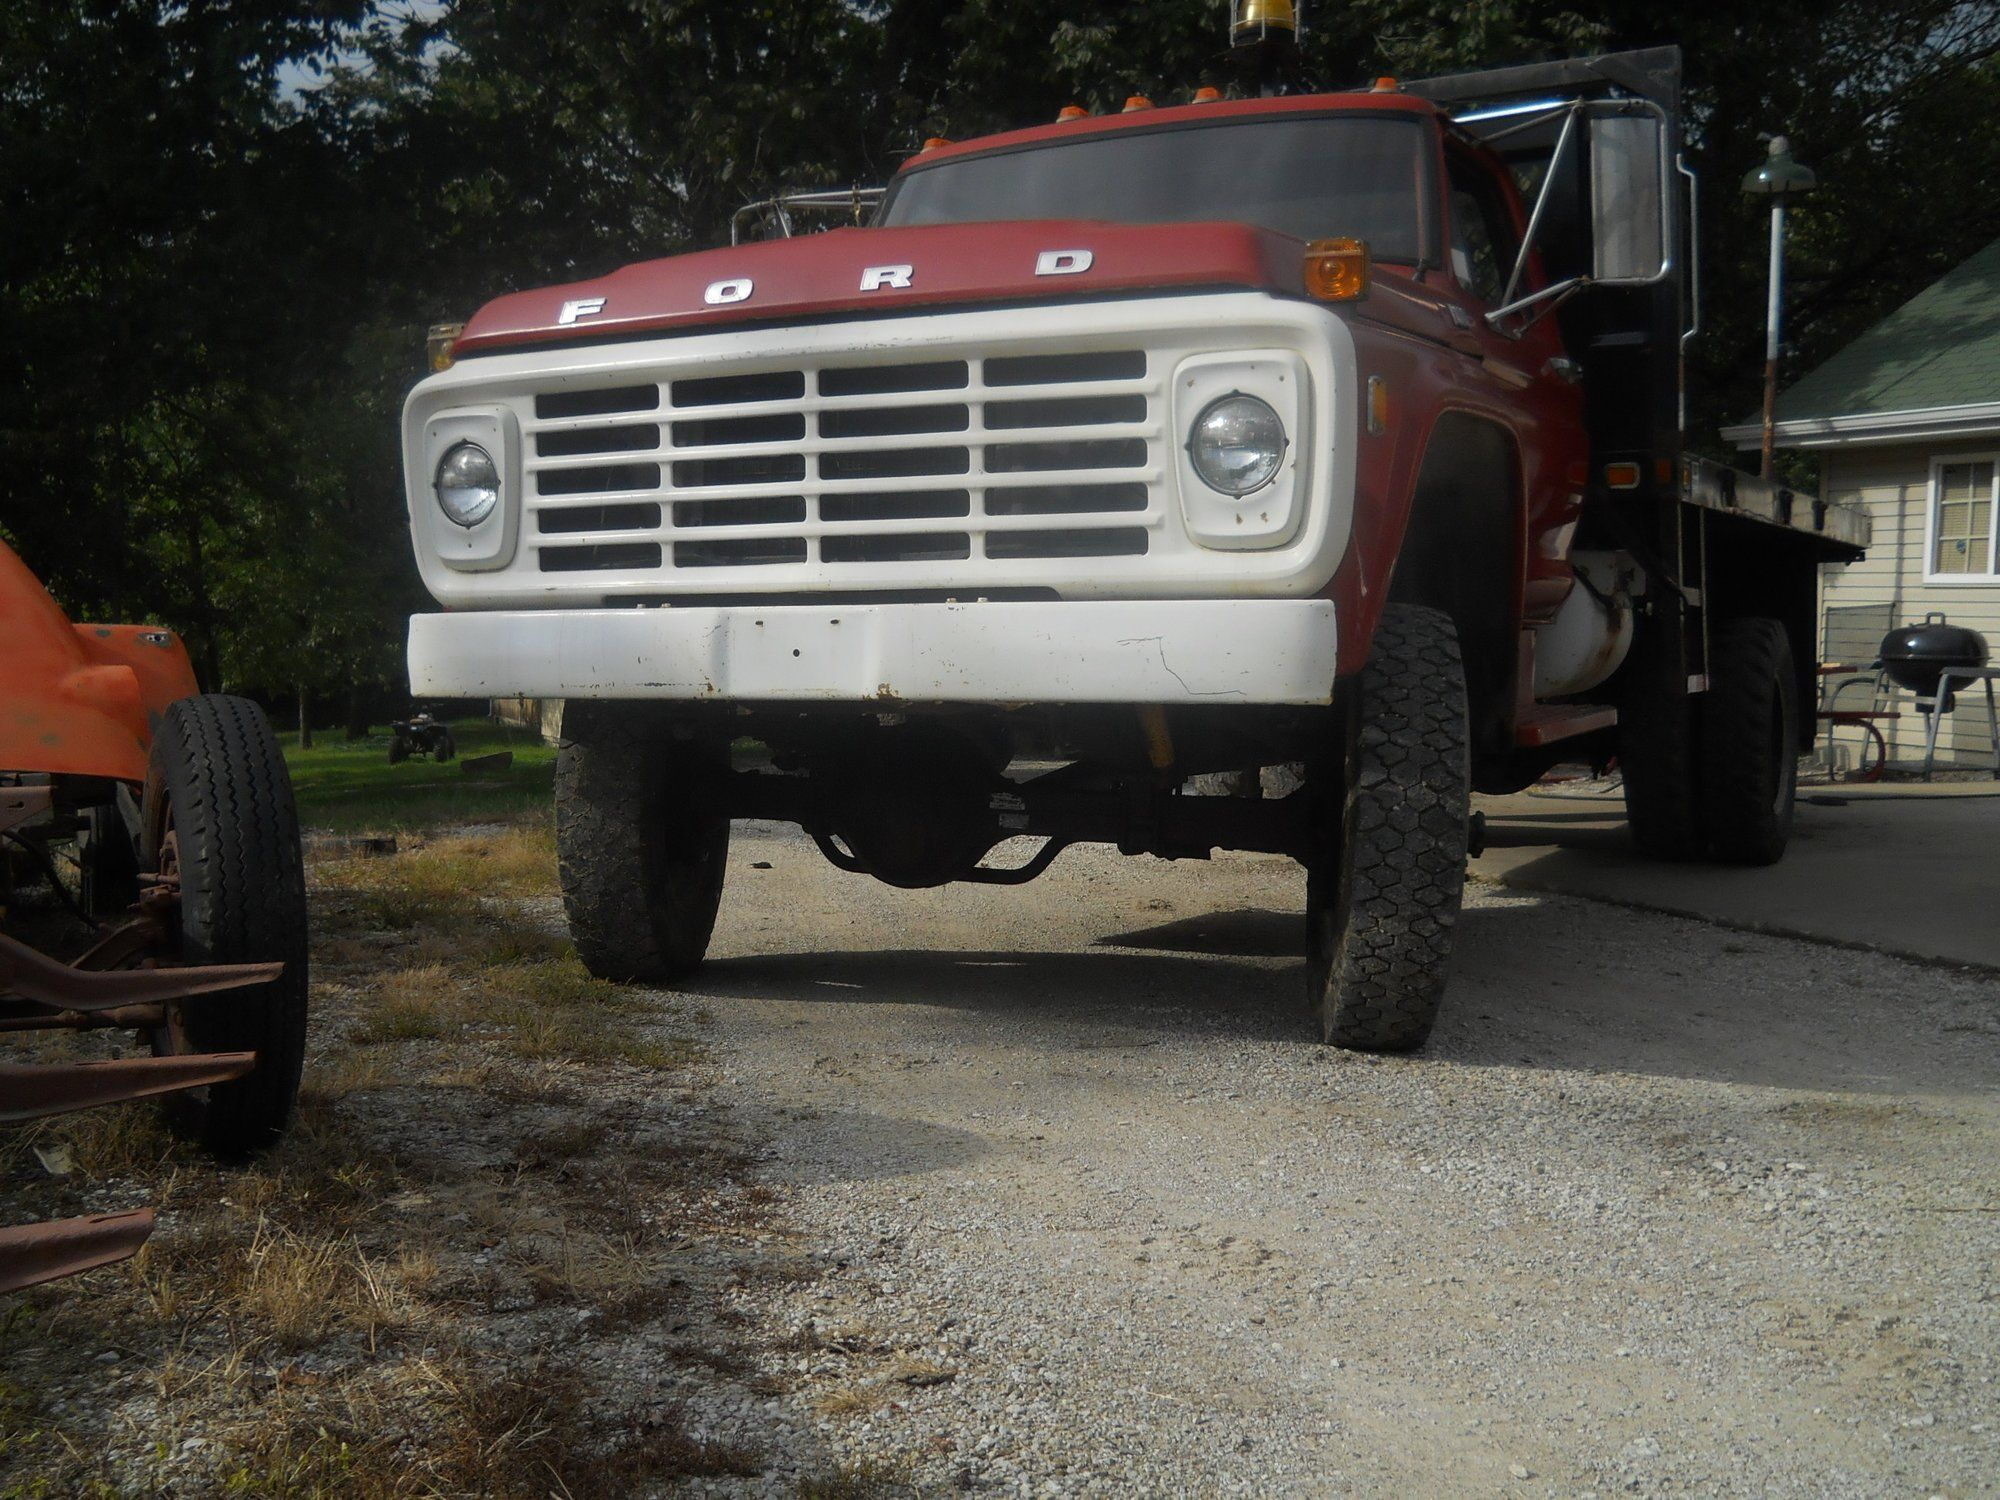 1979 Ford F 600 4x4 Ford Truck Enthusiasts Forums Camion Clasico Camiones Gruas